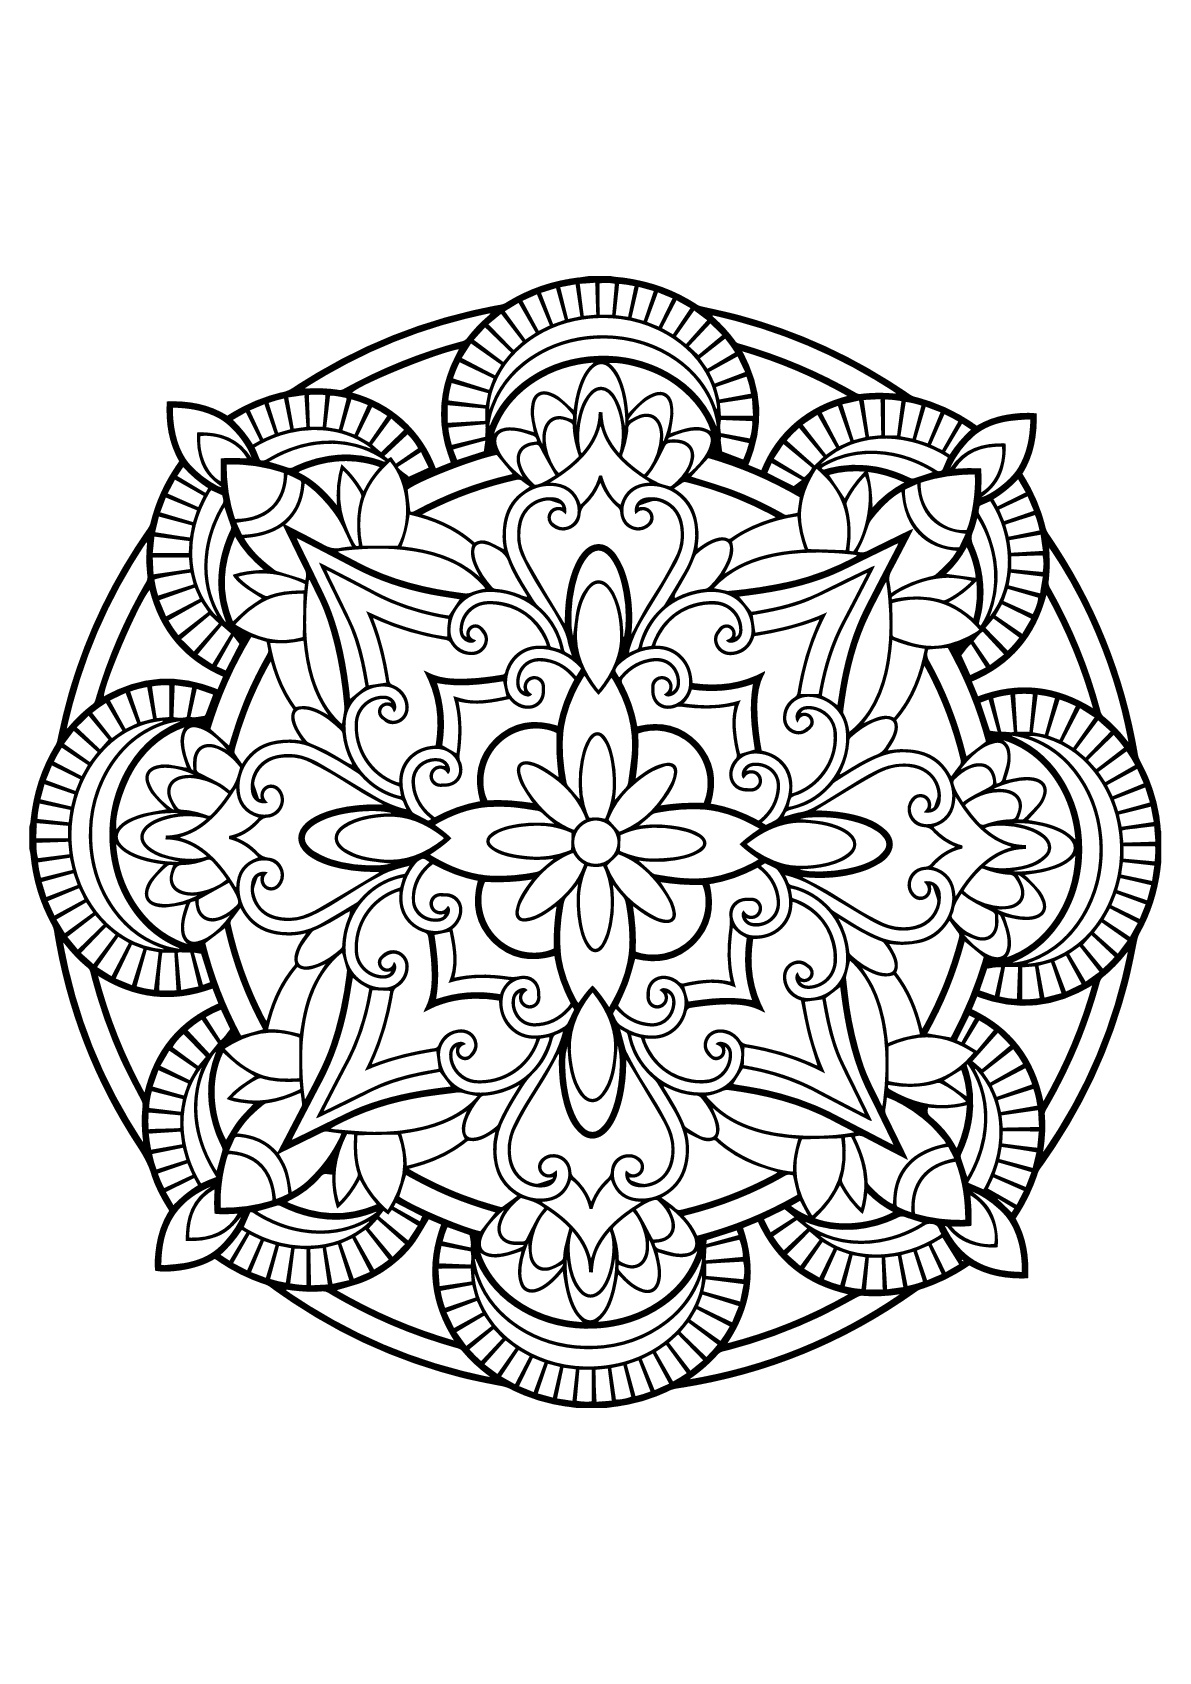 Mandala From Free Coloring Books For Adults 23